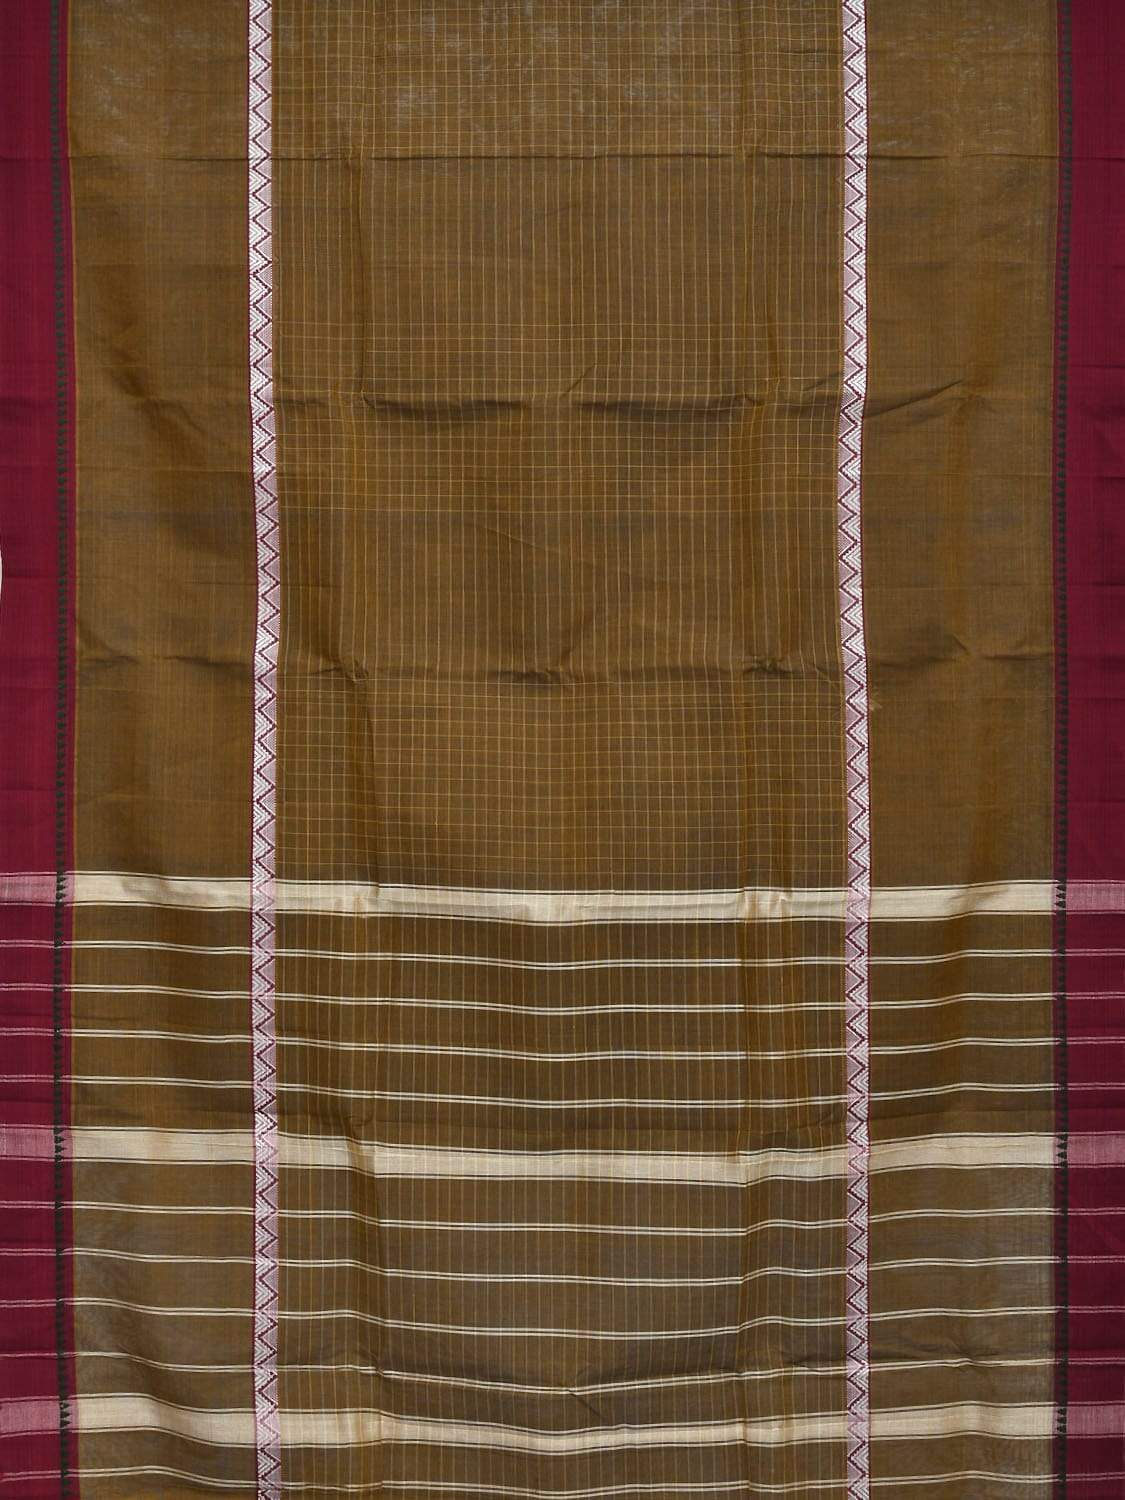 Olive Narayanpet Cotton Handloom Saree with Checks Design No Blouse np0258